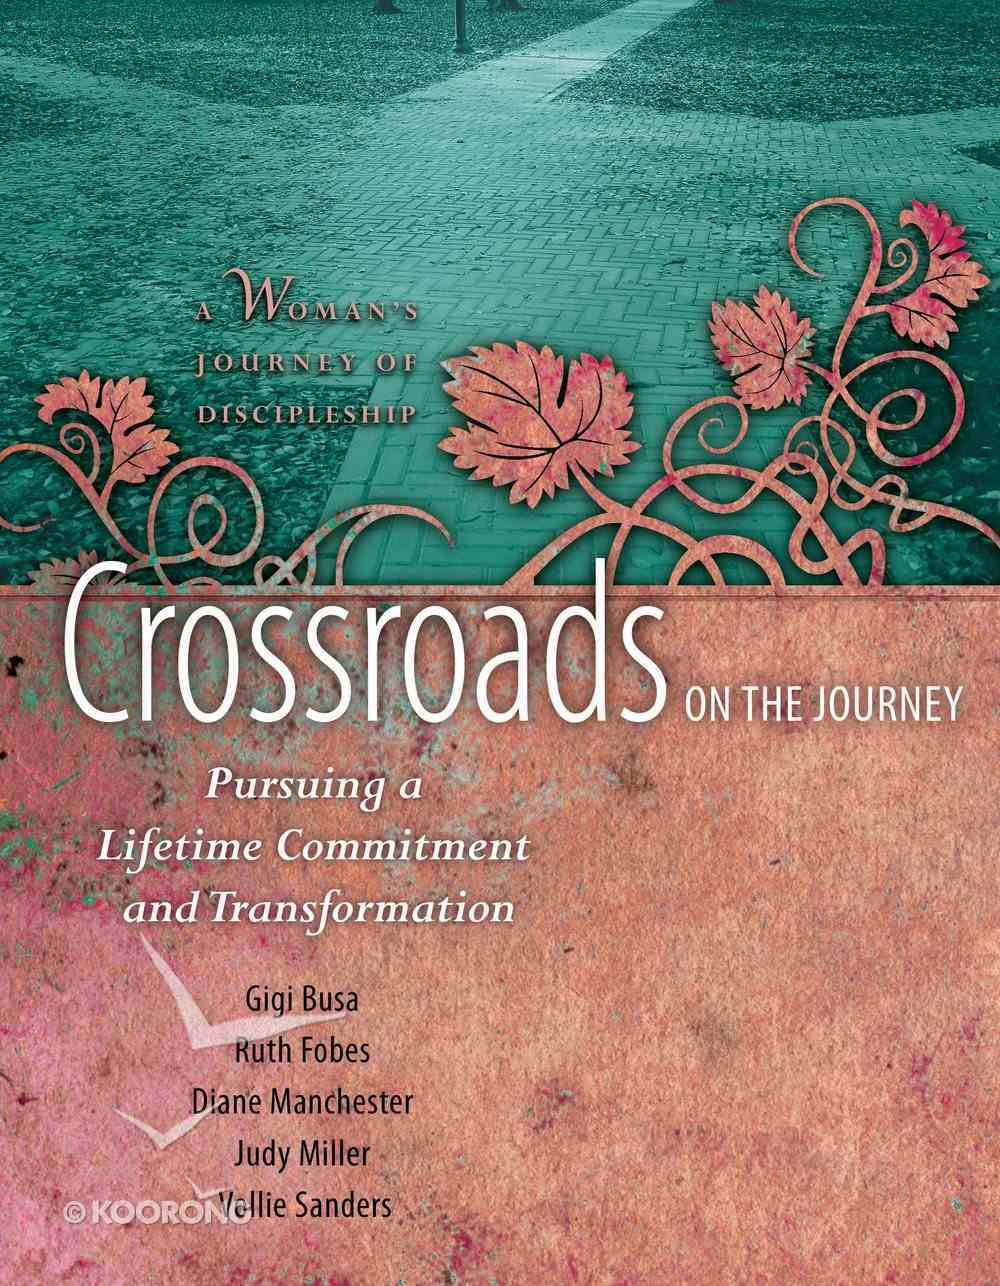 Crossroads on the Journey: Pursuing a Lifetime Commitment and Transformation Paperback